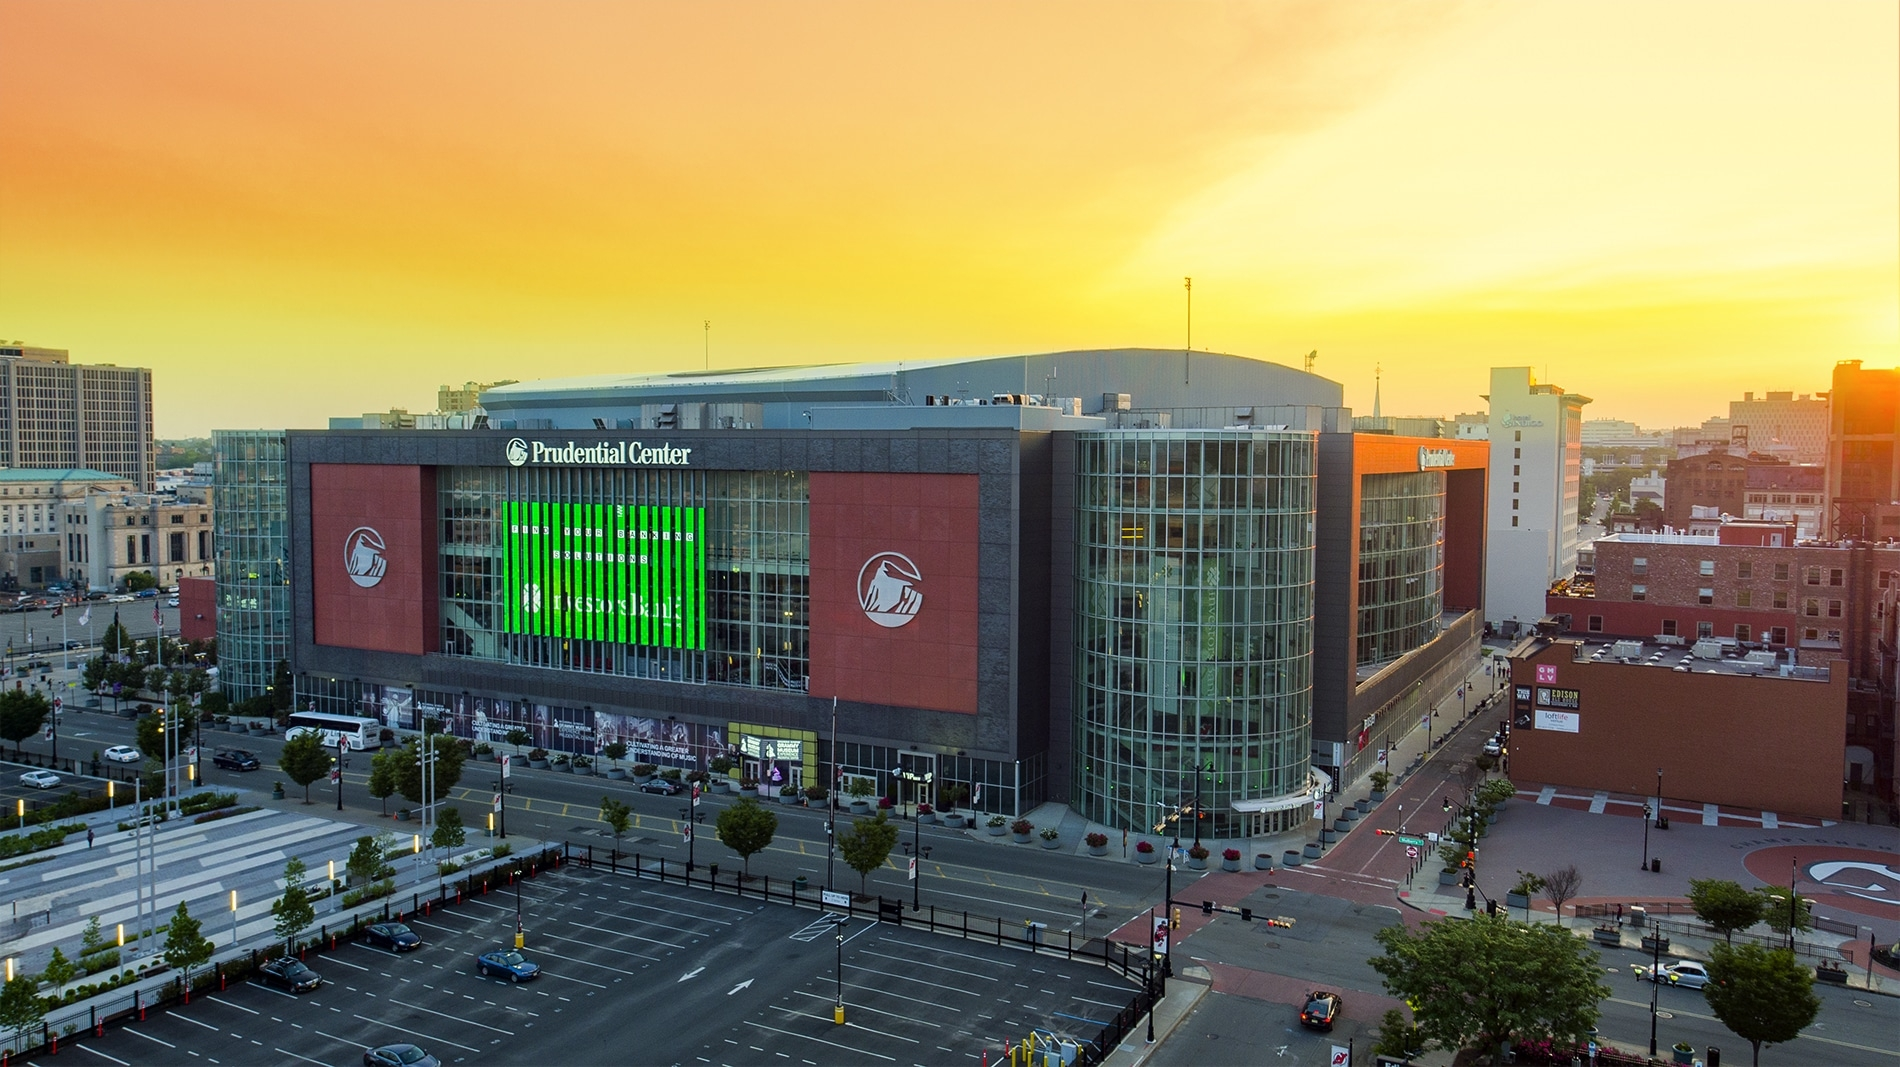 Drone Photograph taken at sunset of the Prudential Center in Newark New Jersey